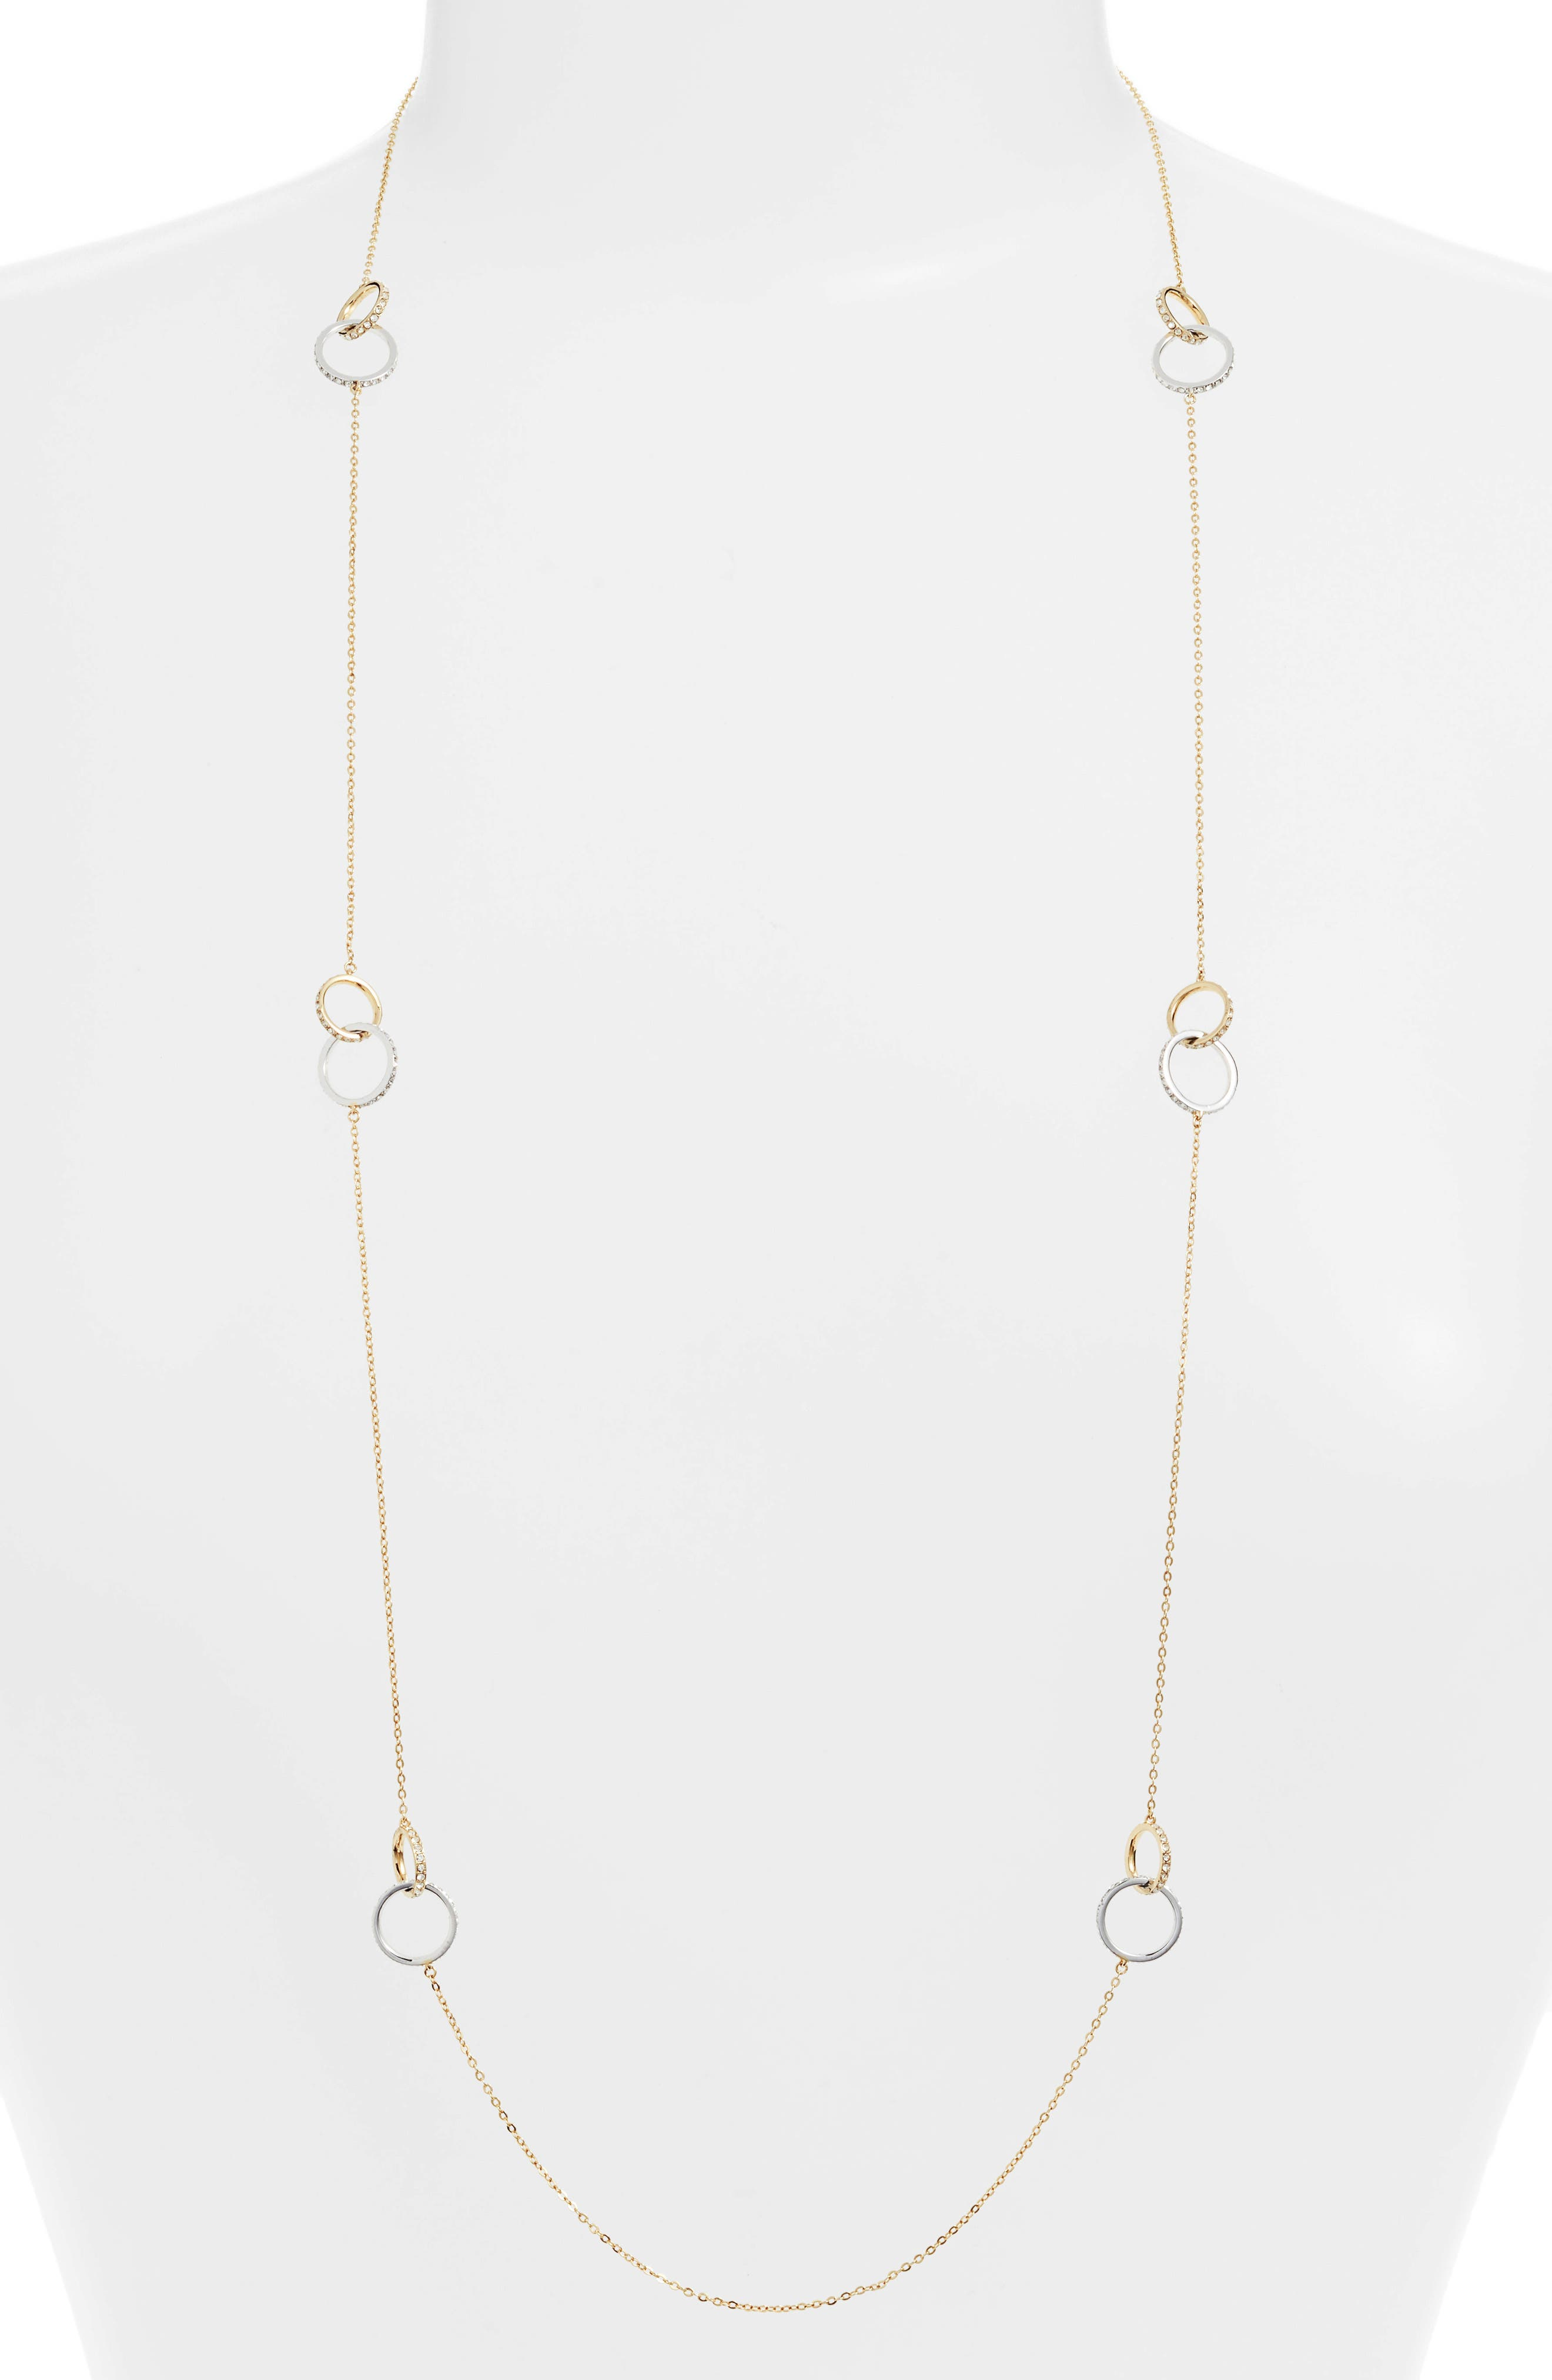 NORDSTROM,                             Infinity Long Link Station Necklace,                             Main thumbnail 1, color,                             CLEAR- GOLD- SILVER